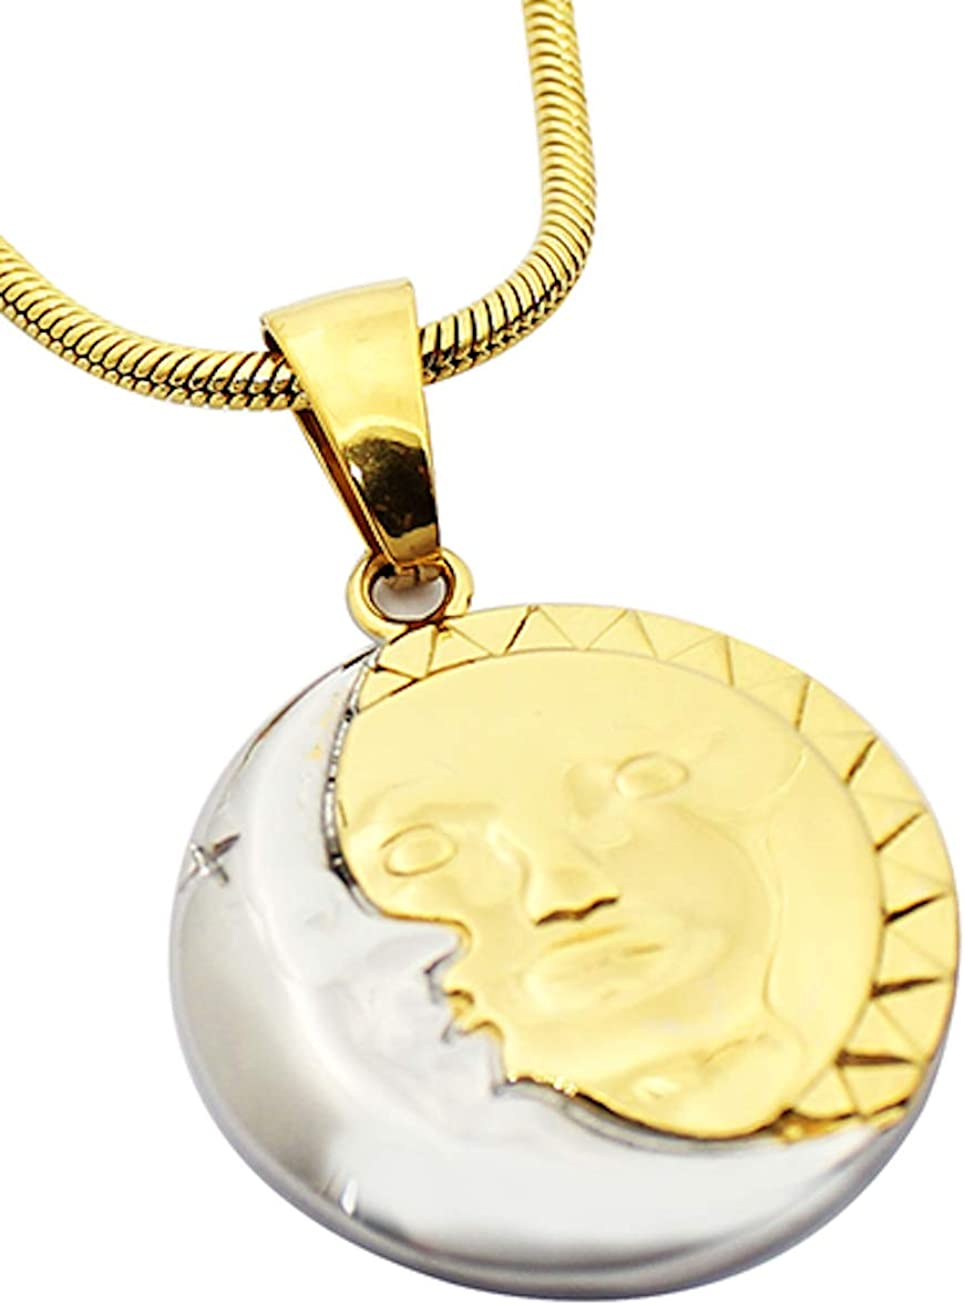 Beautiful Sun Moon Stainless Steel Pendant Necklace, FREE Gift Box!